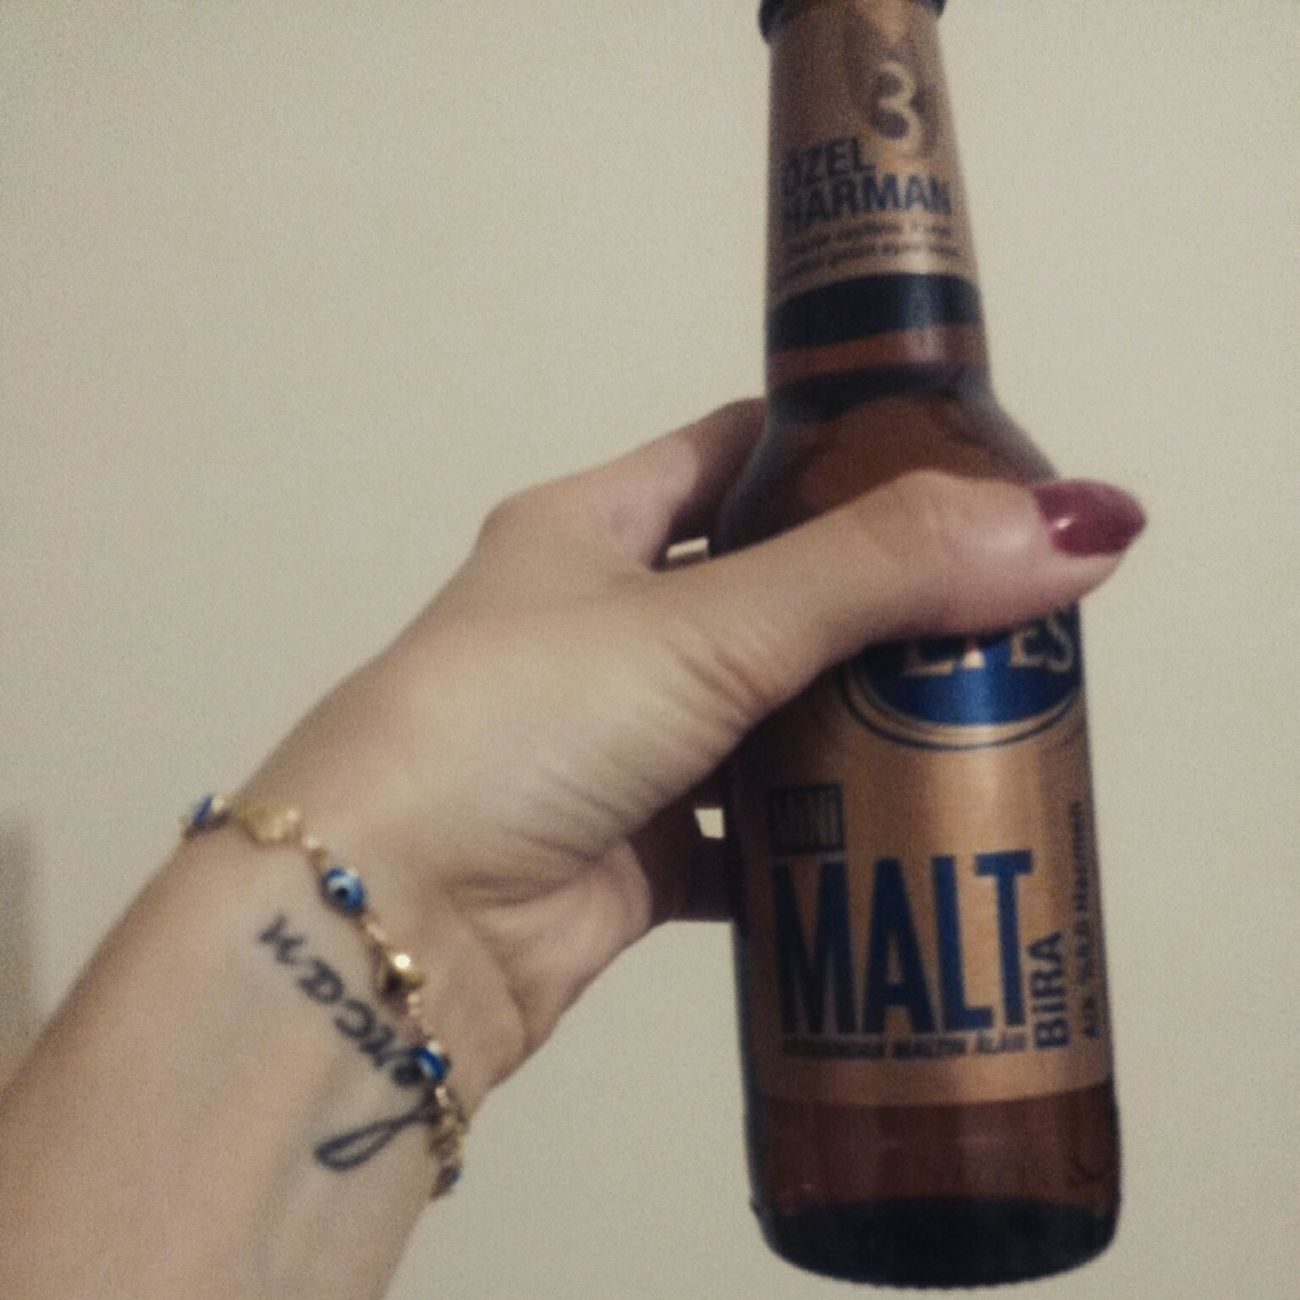 Efes Pilsen Efesmalt Beer O'clock Tattoo That's Me Beautiful Day Happiness